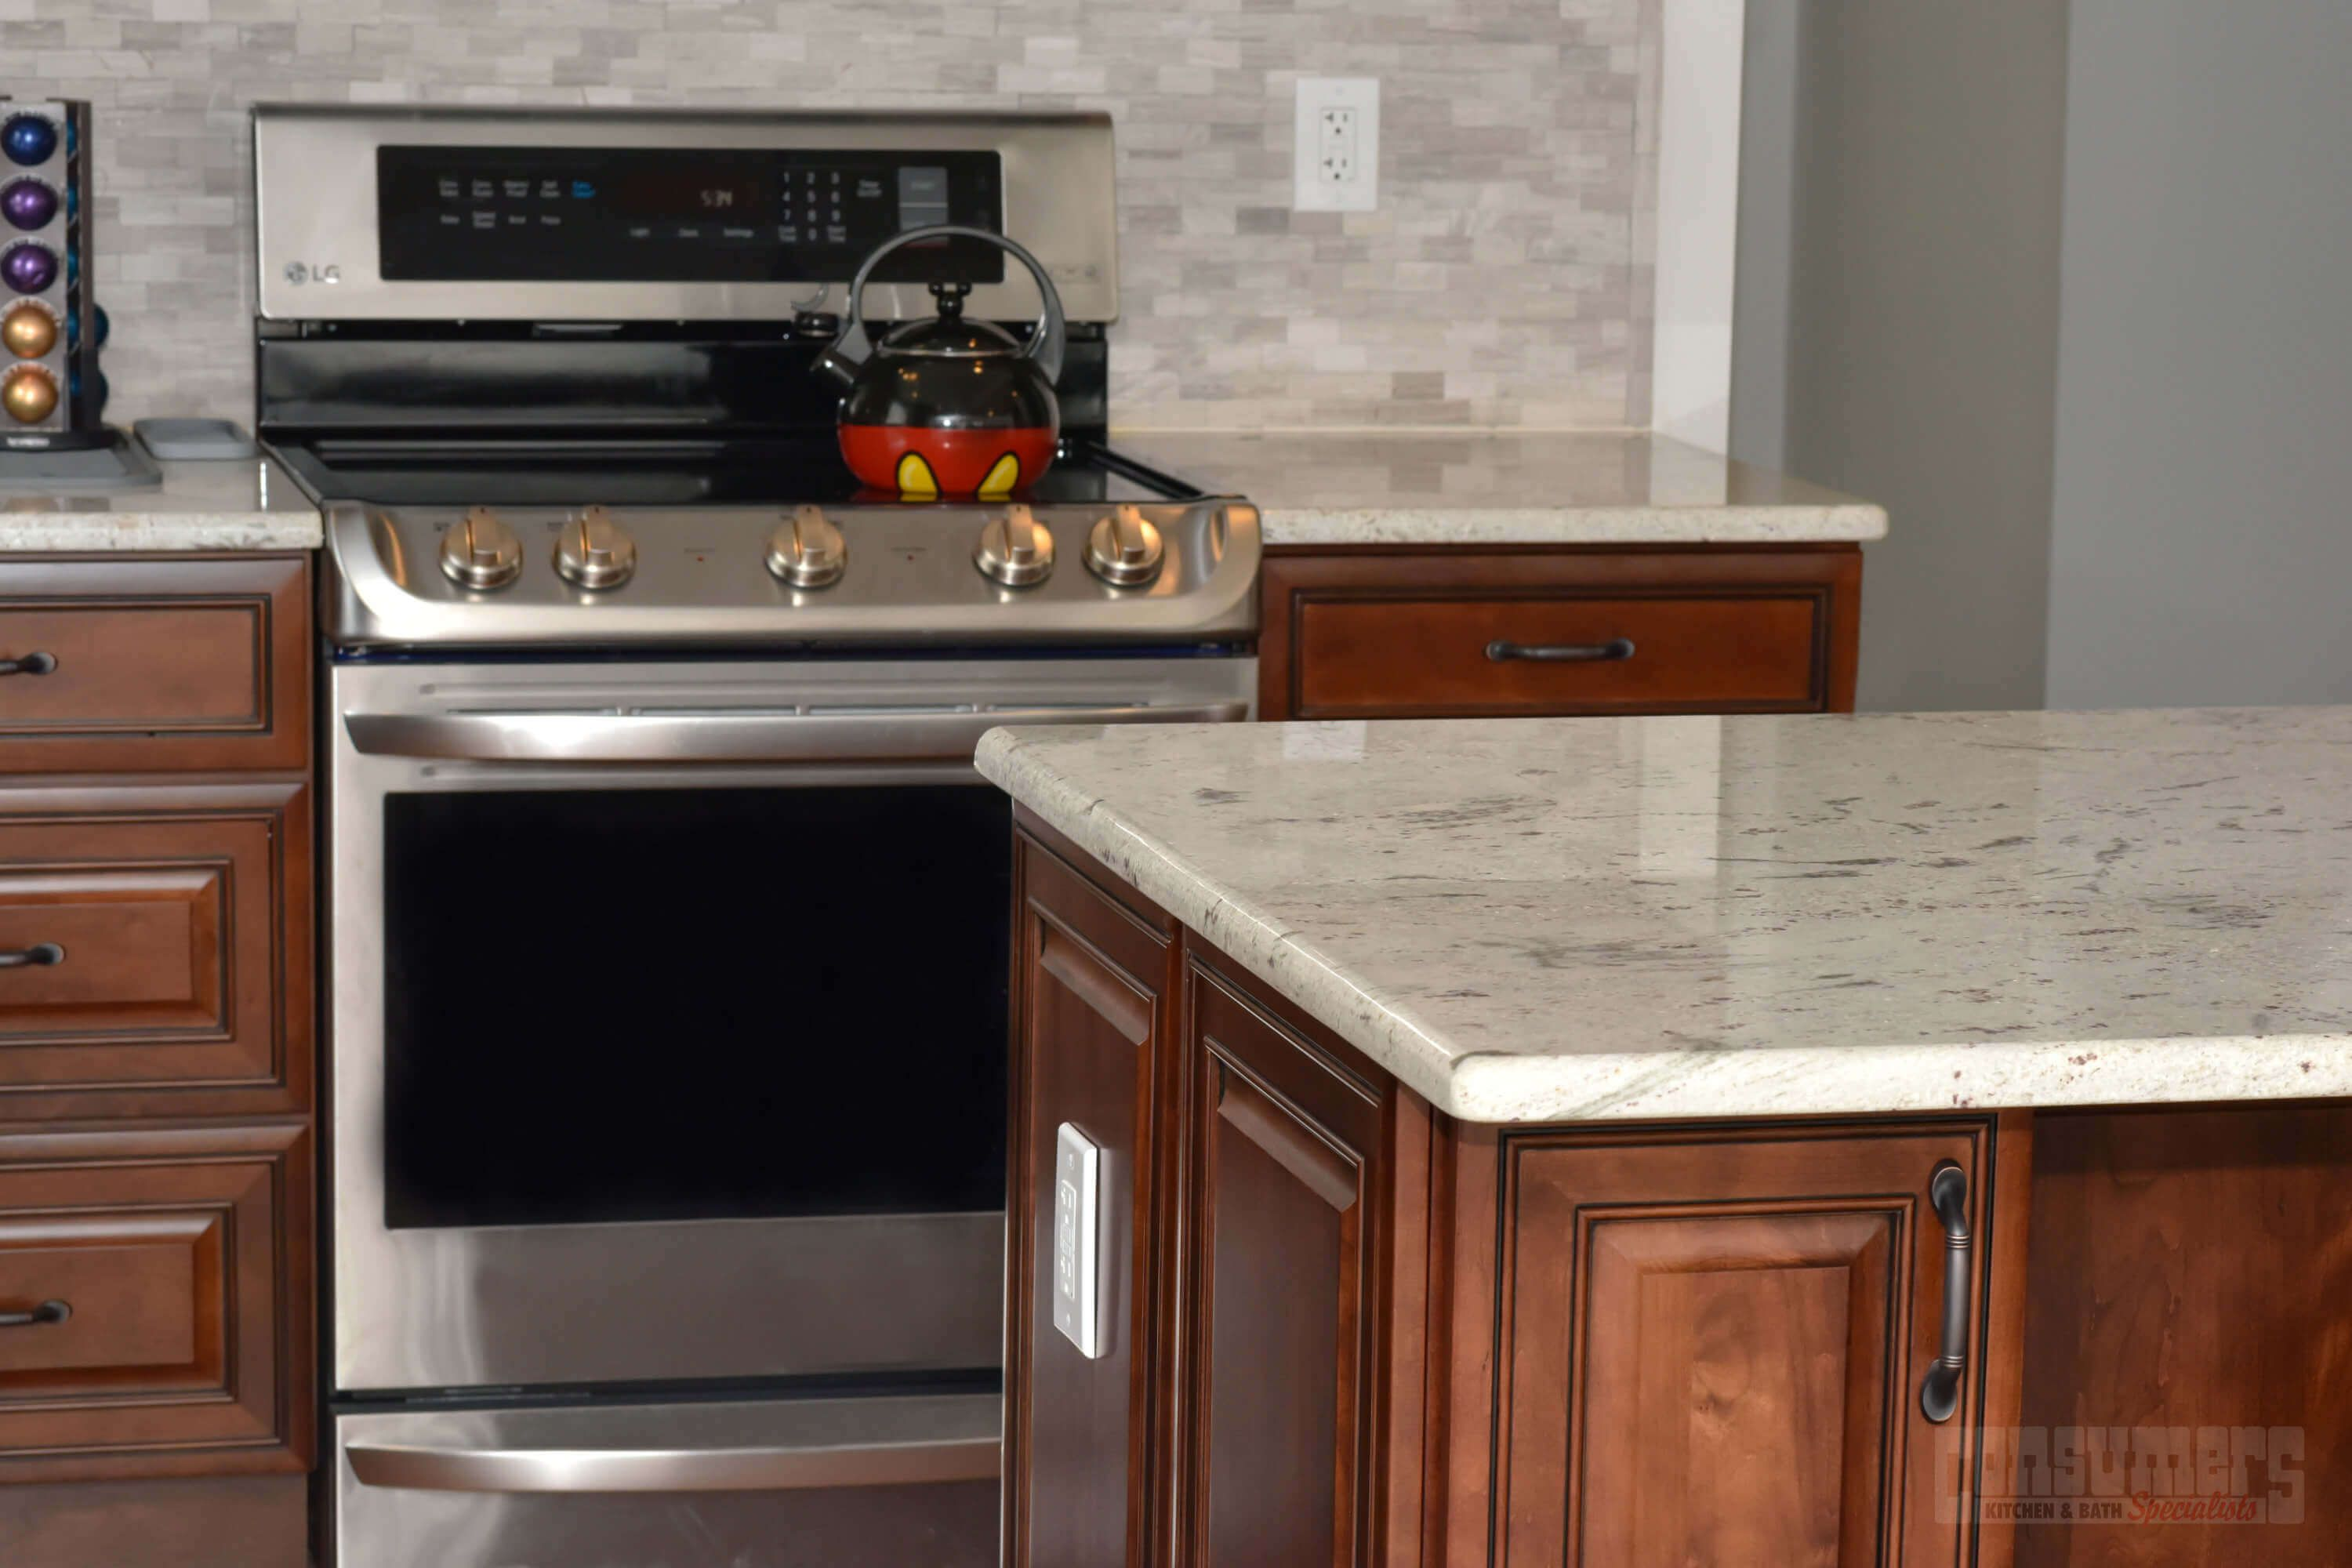 Pin by Consumers Kitchens & Baths on Hauppauge Ensemble | Pinterest ...